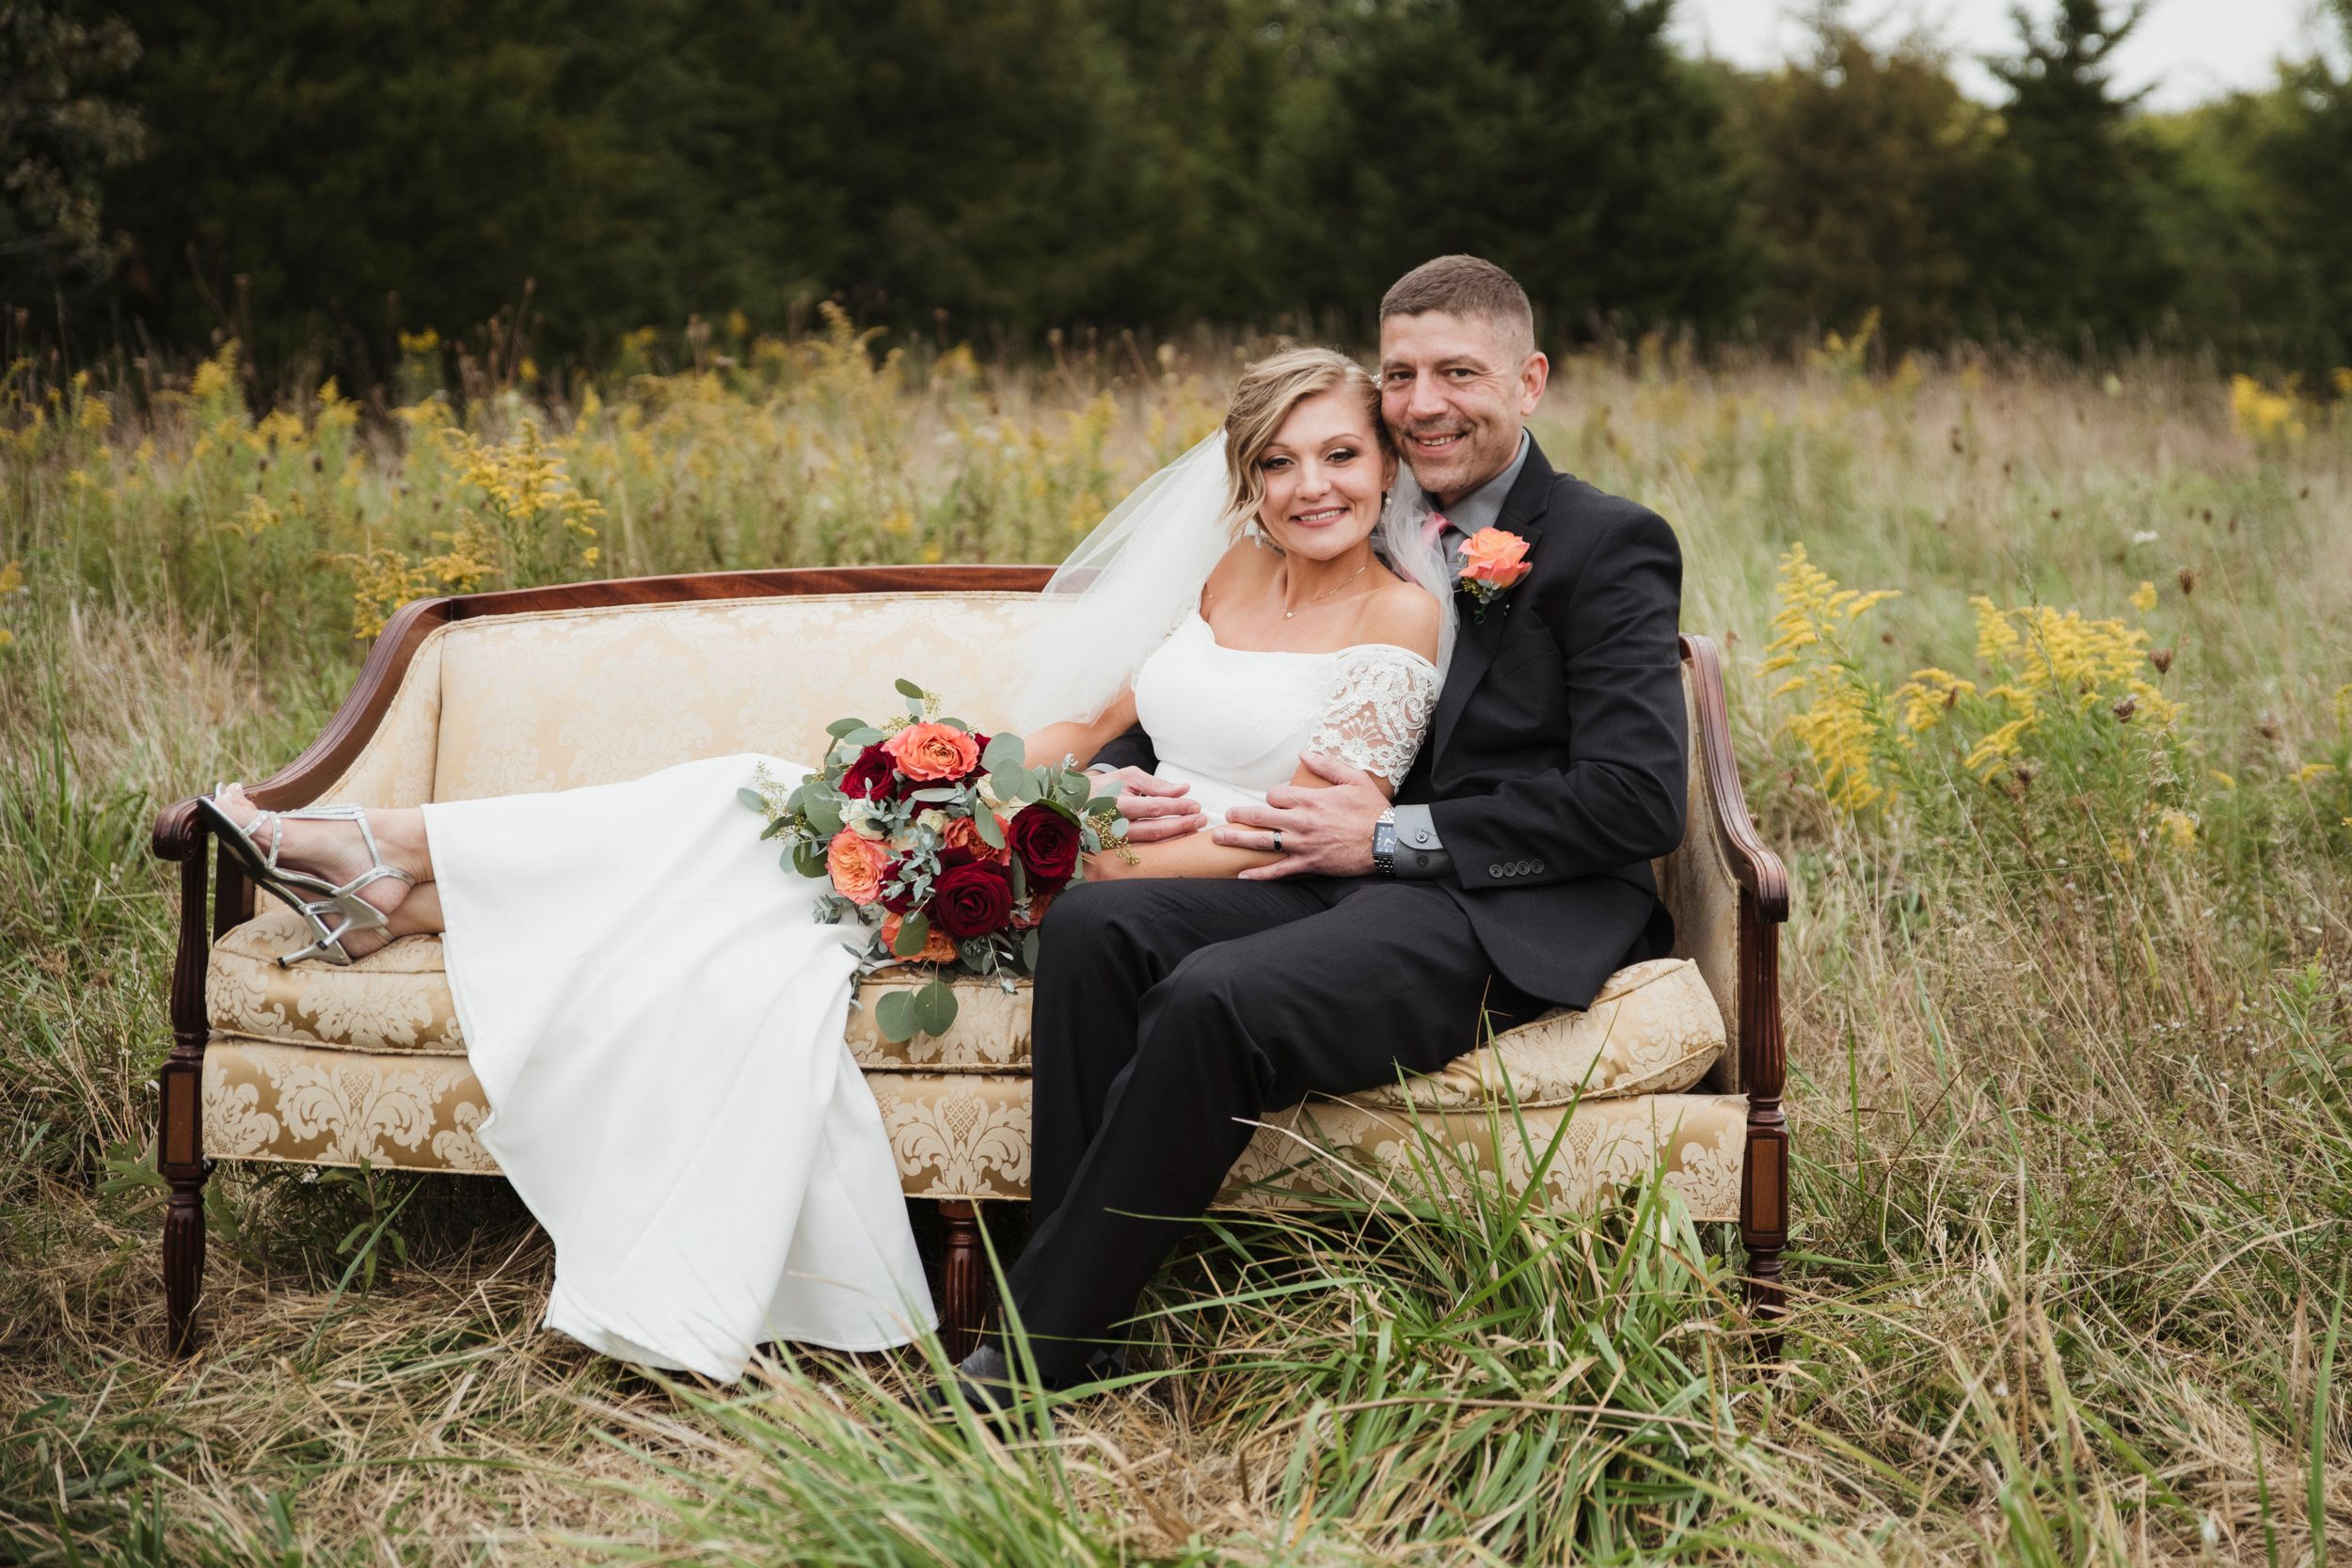 bride and groom on a couch in a field